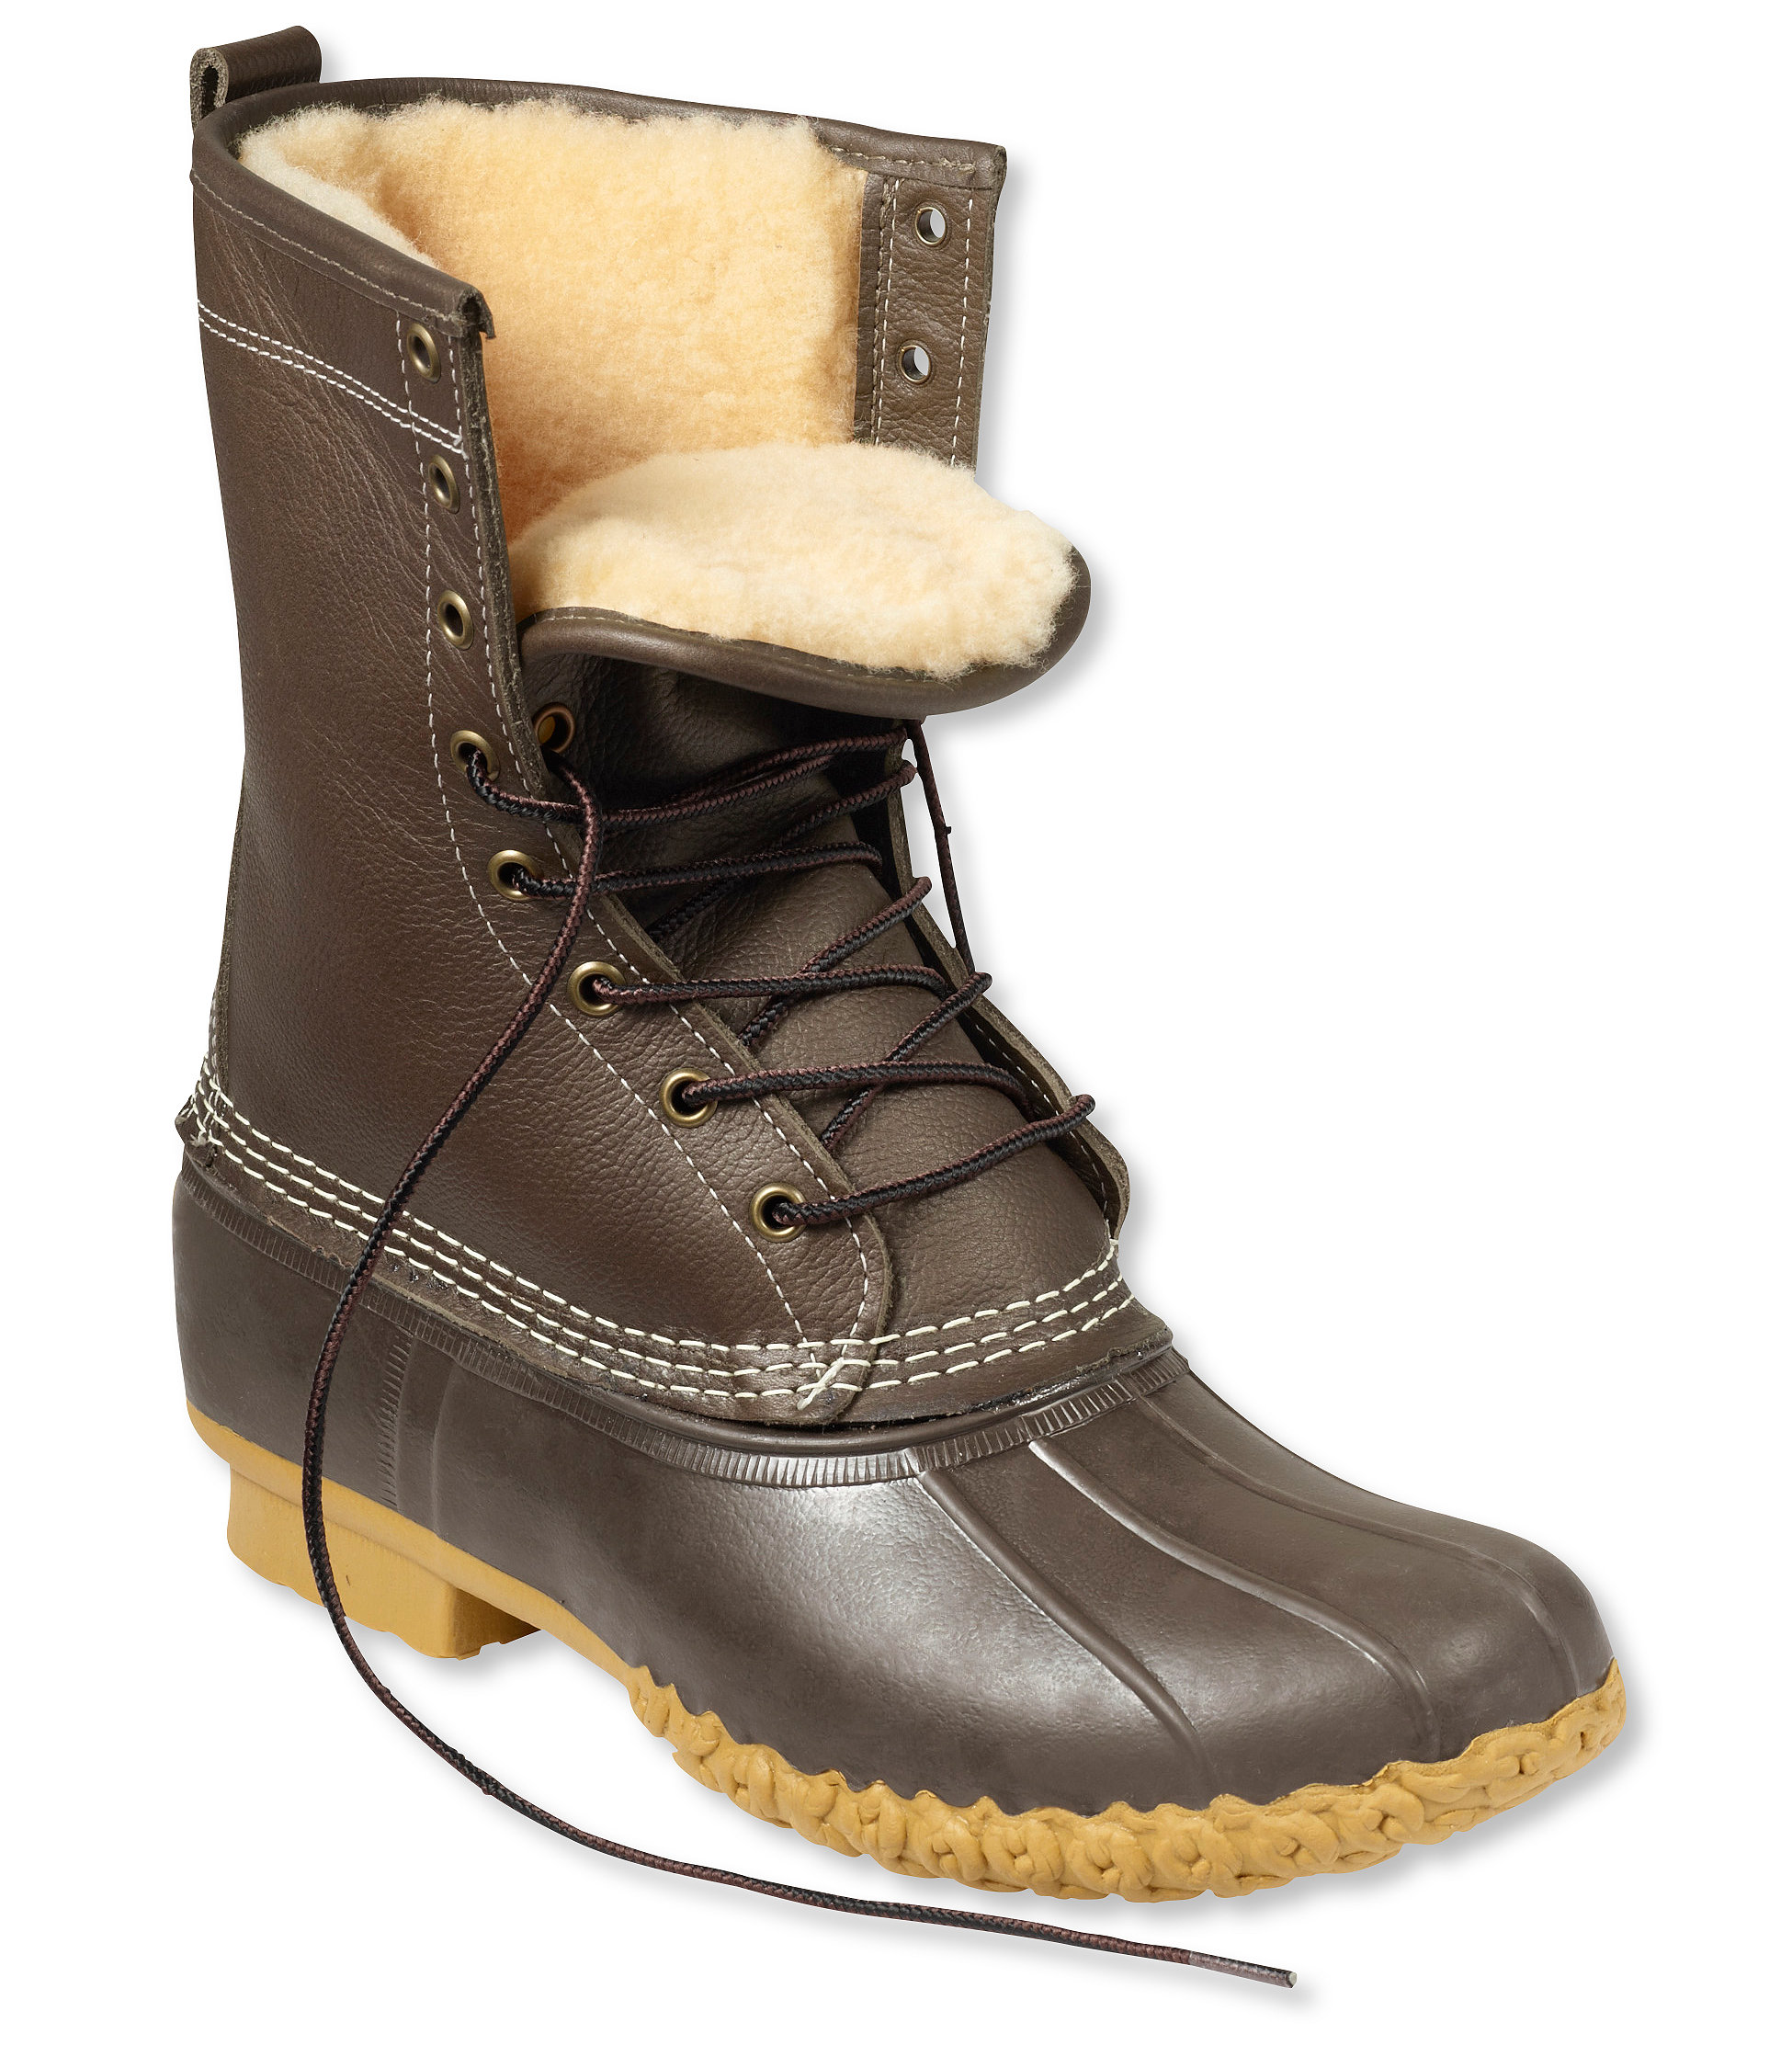 "L.L.Bean Bean Boots, 10"" Shearling-Lined"